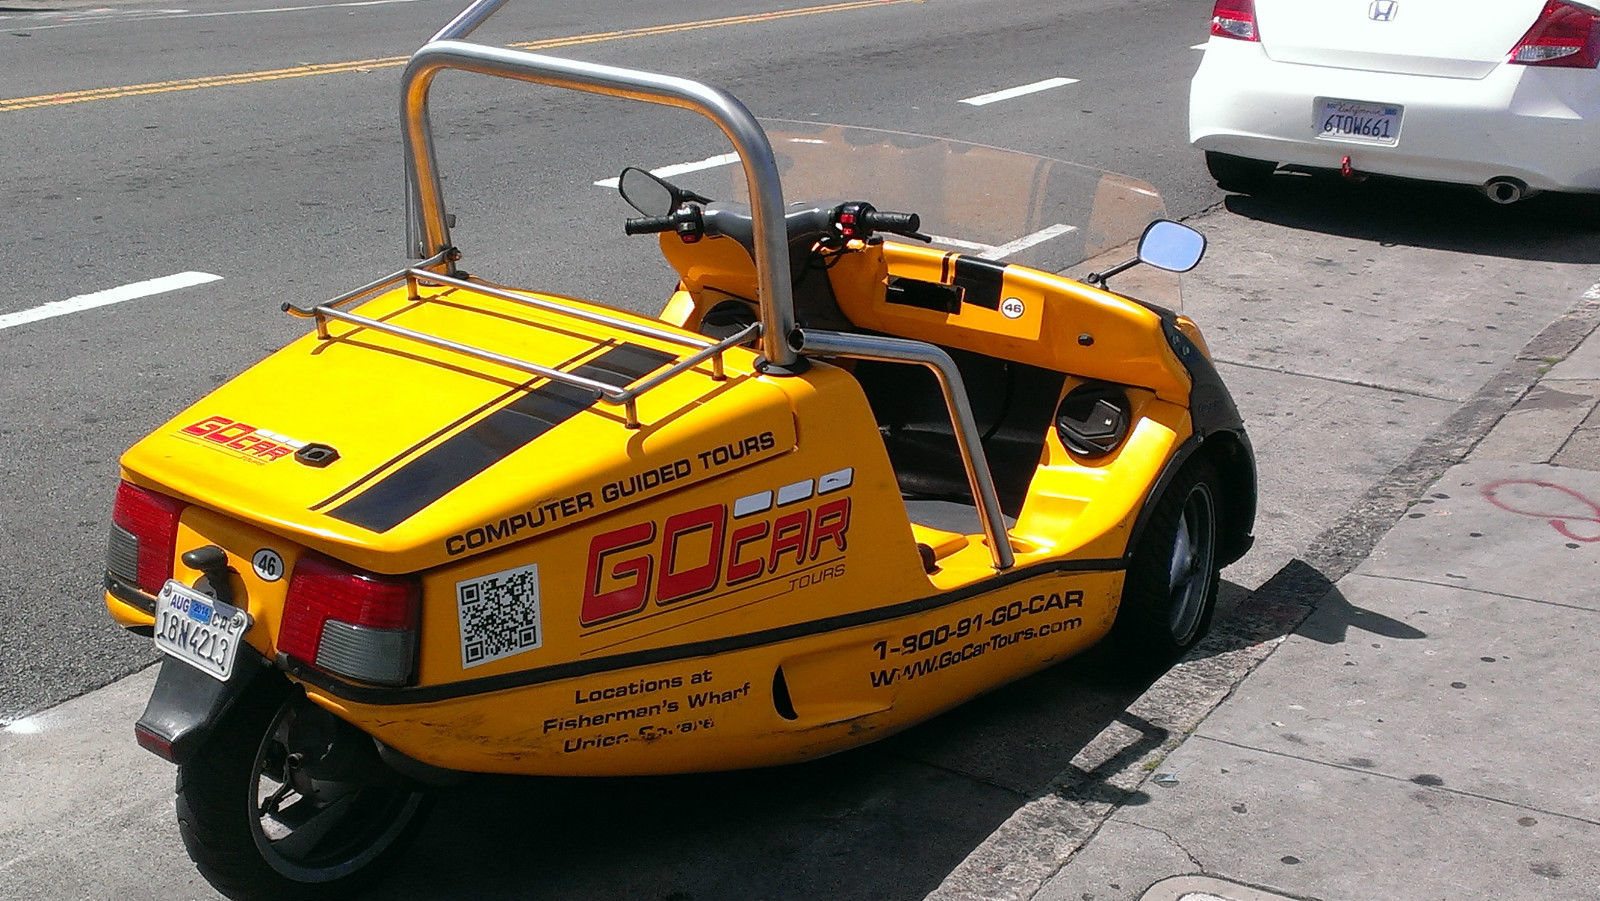 005-Trigger-GoCar-for-Sale-1.jpg